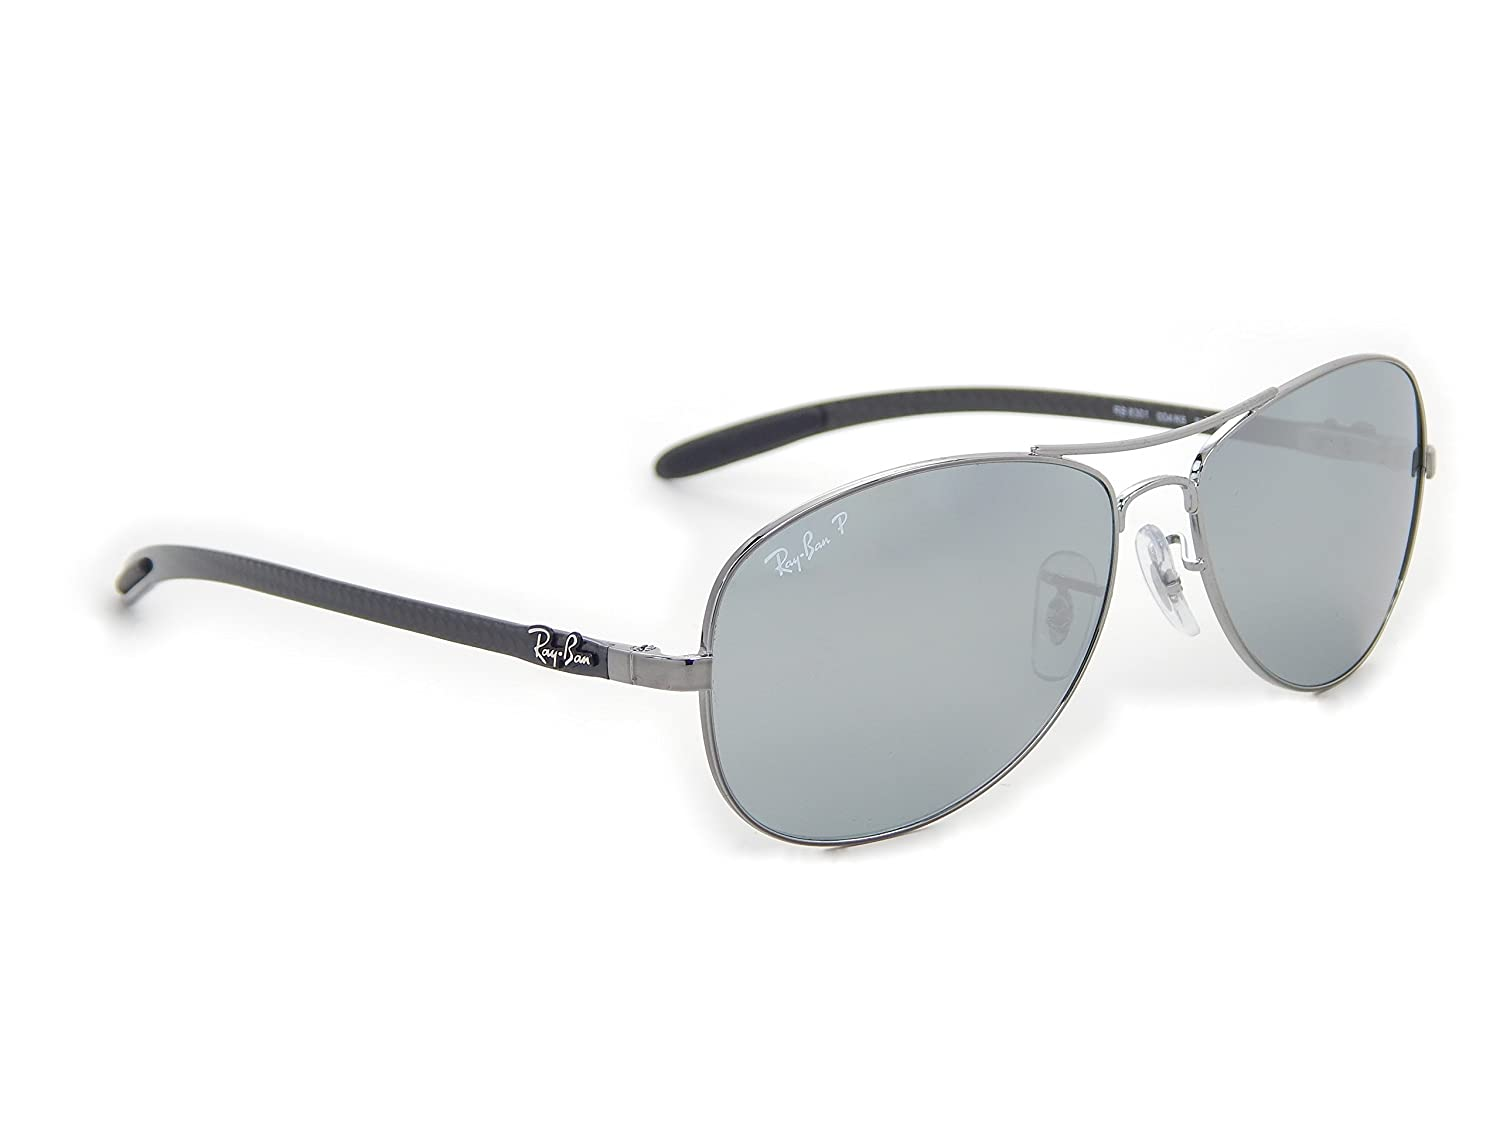 820581f482 Ray Ban Tech Carbon Fiber RB8301 Shiny Gunmetal   Silver Mirror Polarized  004 K6 59mm Sunglasses  Amazon.co.uk  Shoes   Bags